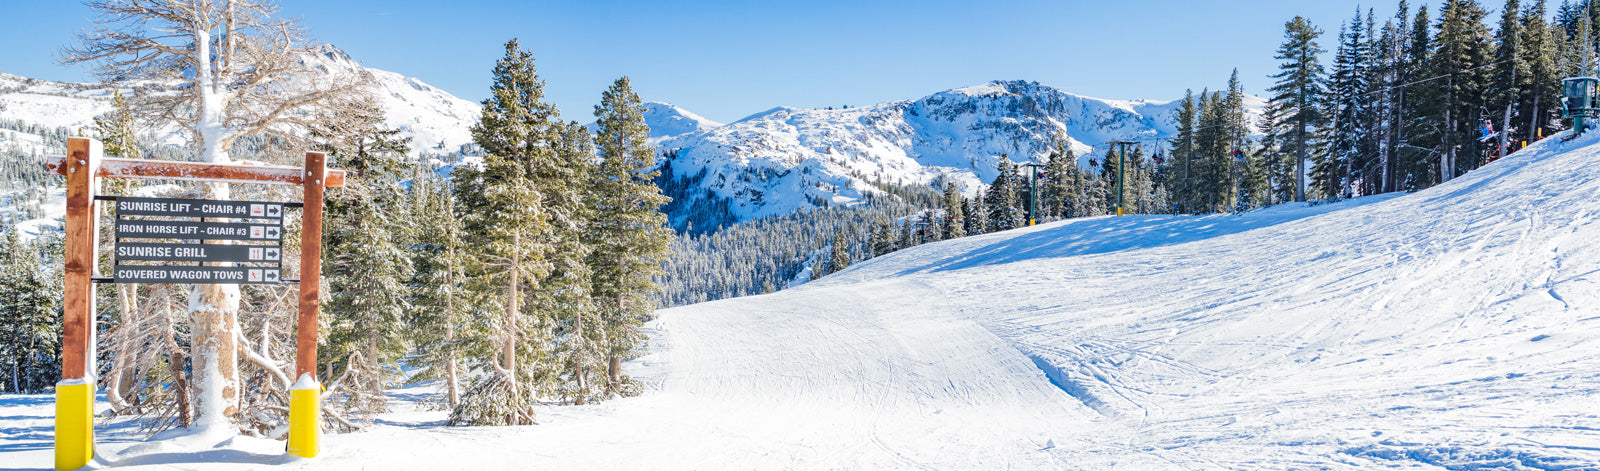 Best places to ski and snowboard on the West Coast